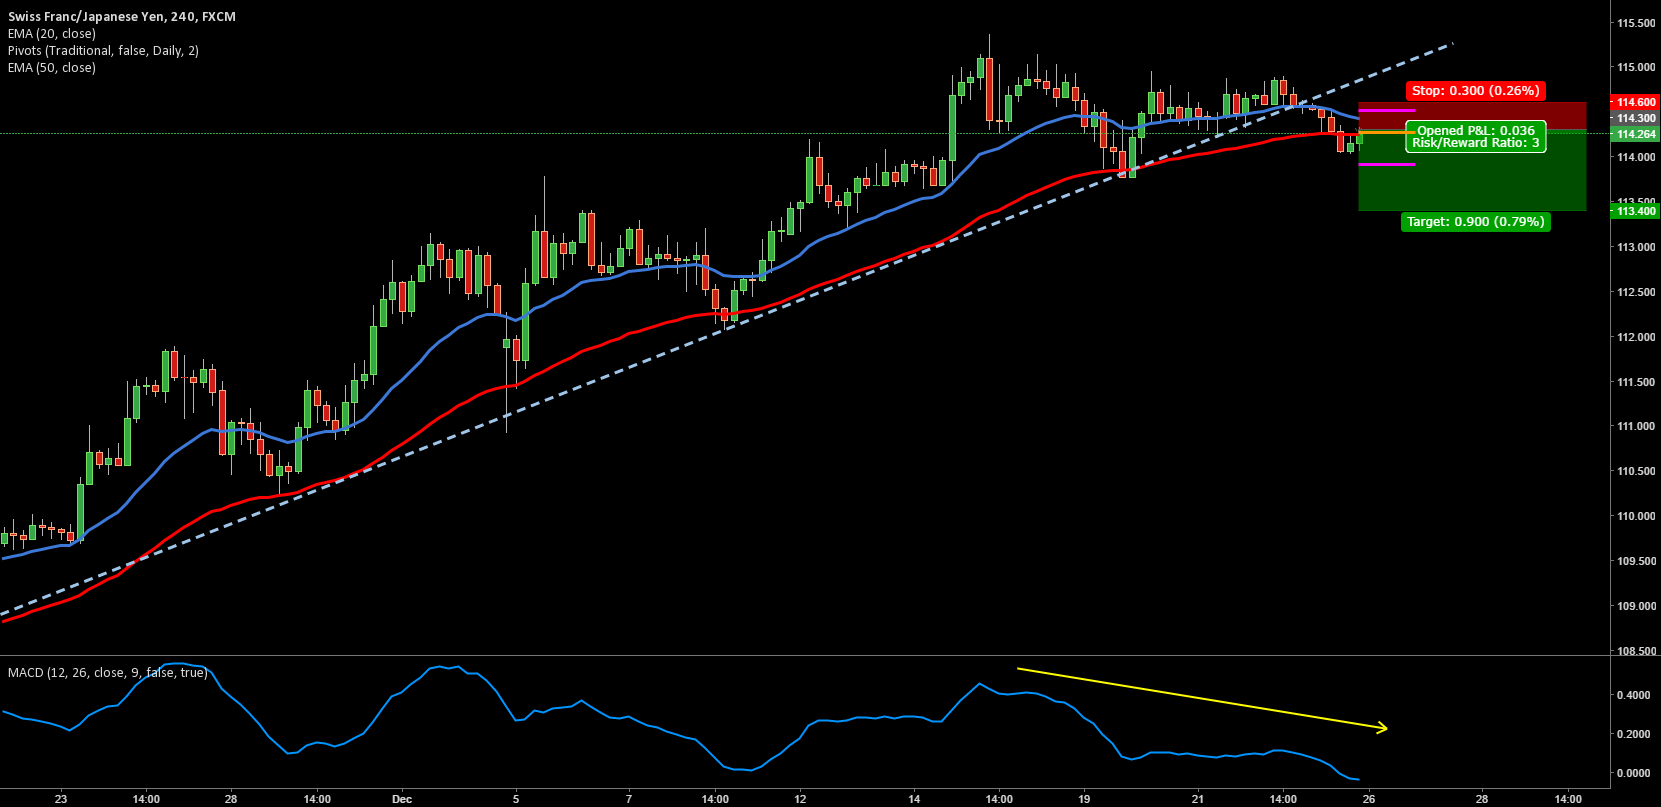 CHFJPY 4 HOUR BREAK AND RETEST TRADE SETUP